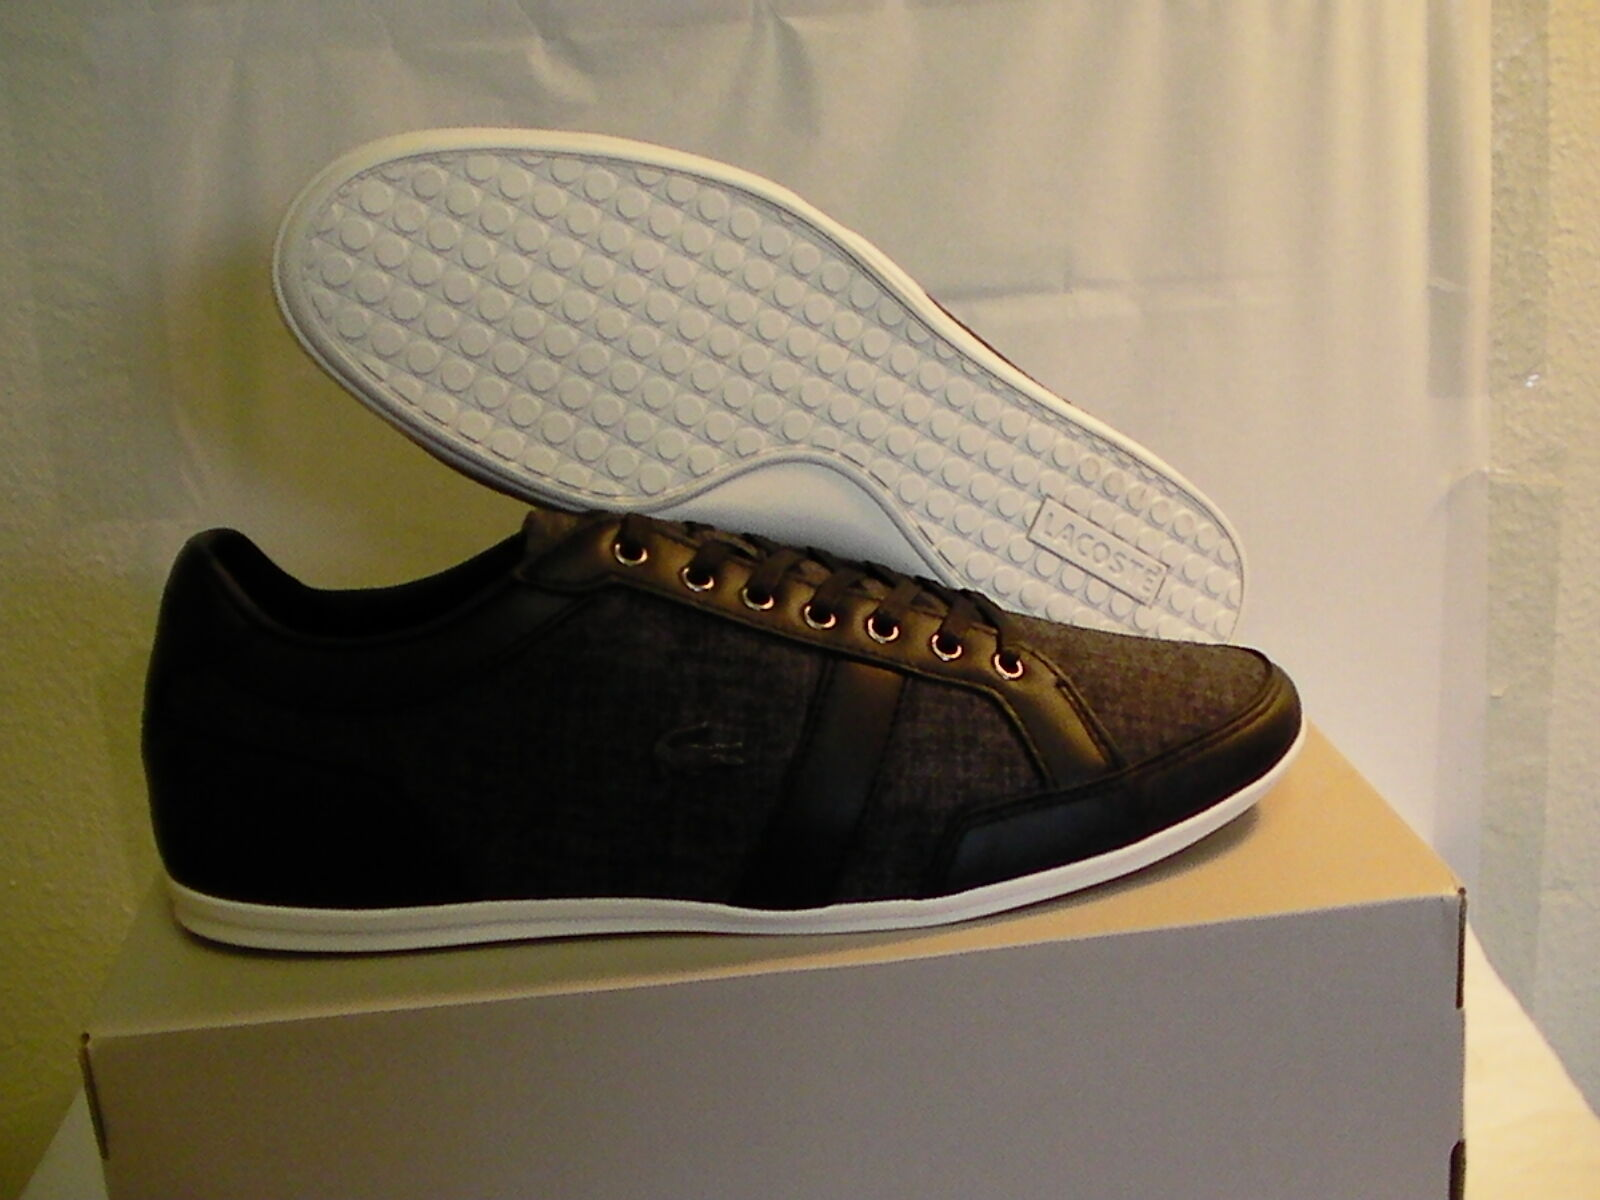 Lacoste men shoes casual alissos 13 spm blk textile leather size 11 us new